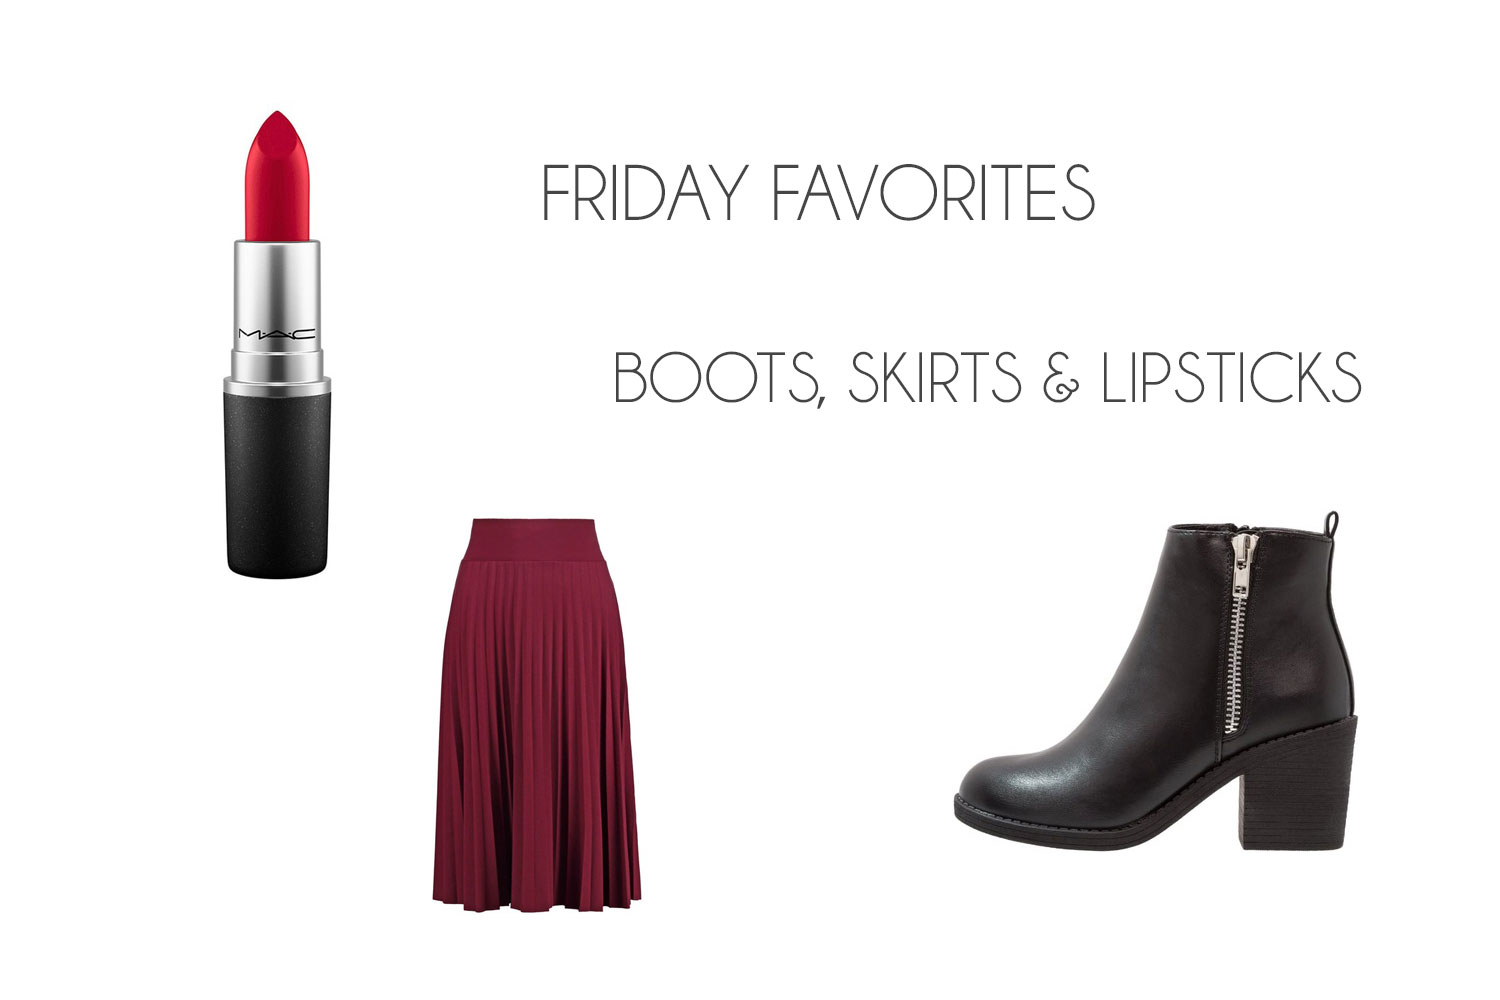 Friday Favorites | Boots, Skirts & Lipsticks - FridayFavorites 1